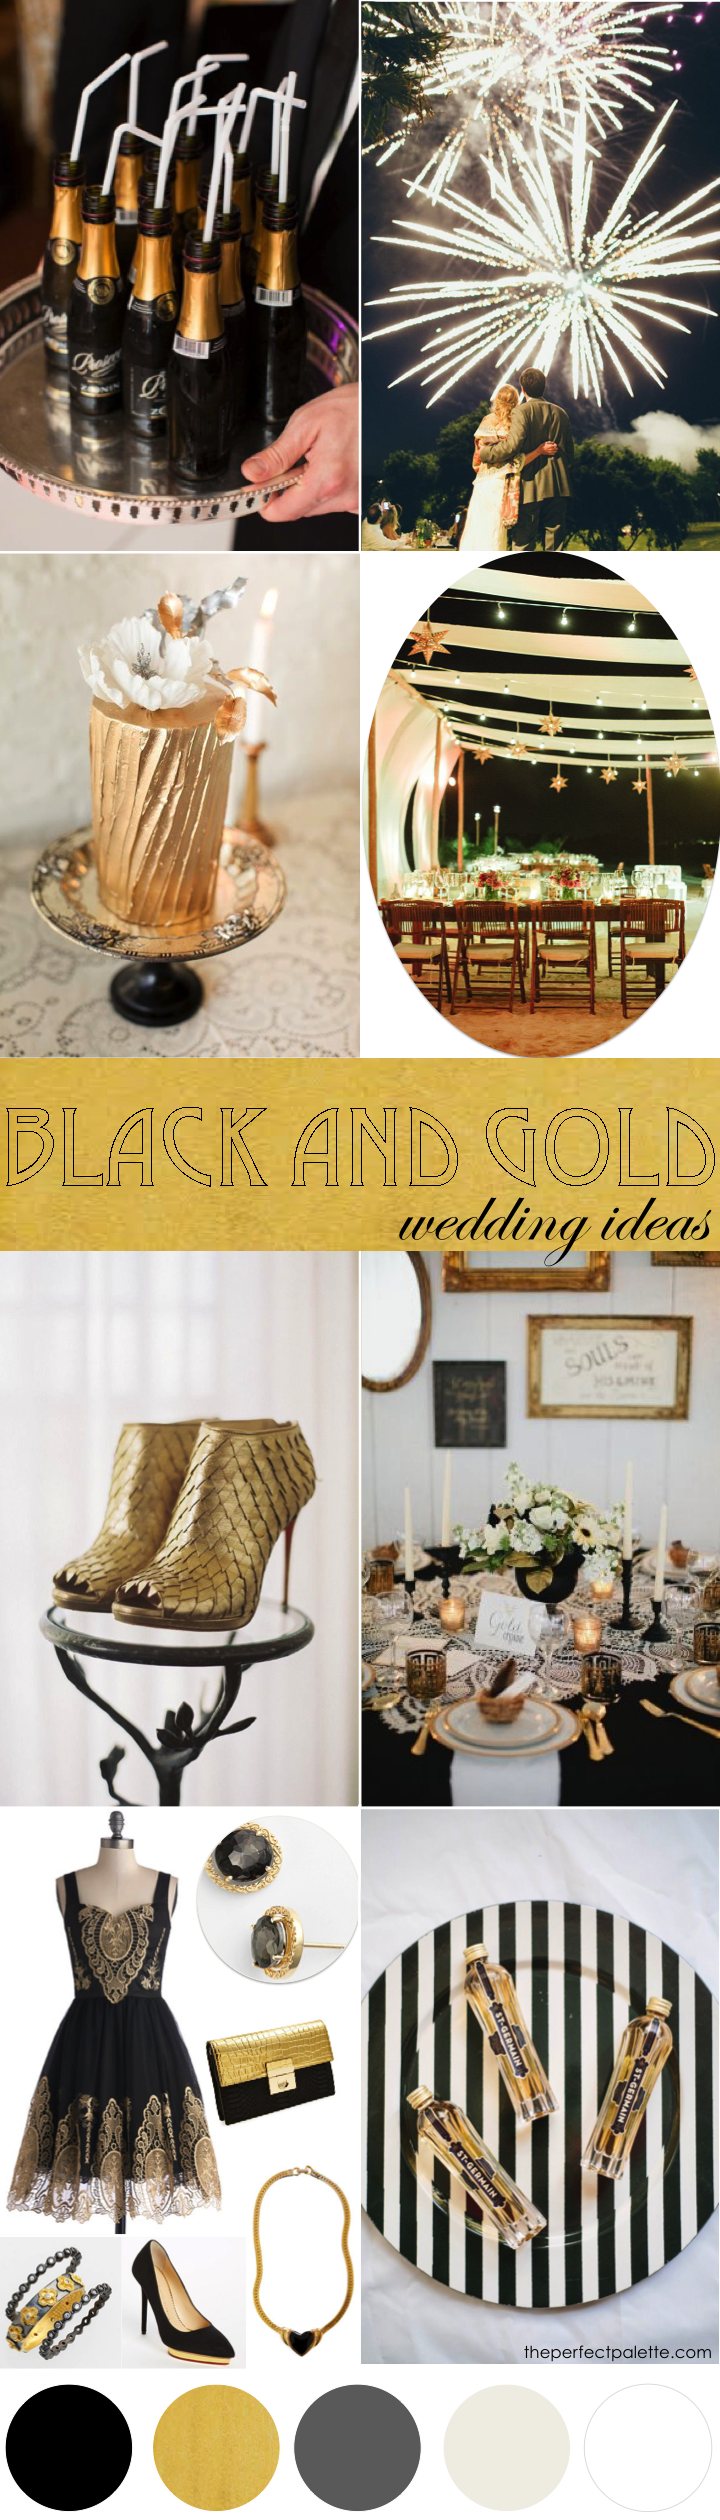 Wedding decorations black and gold  Black  Gold Wedding Ideas  Someday I may say